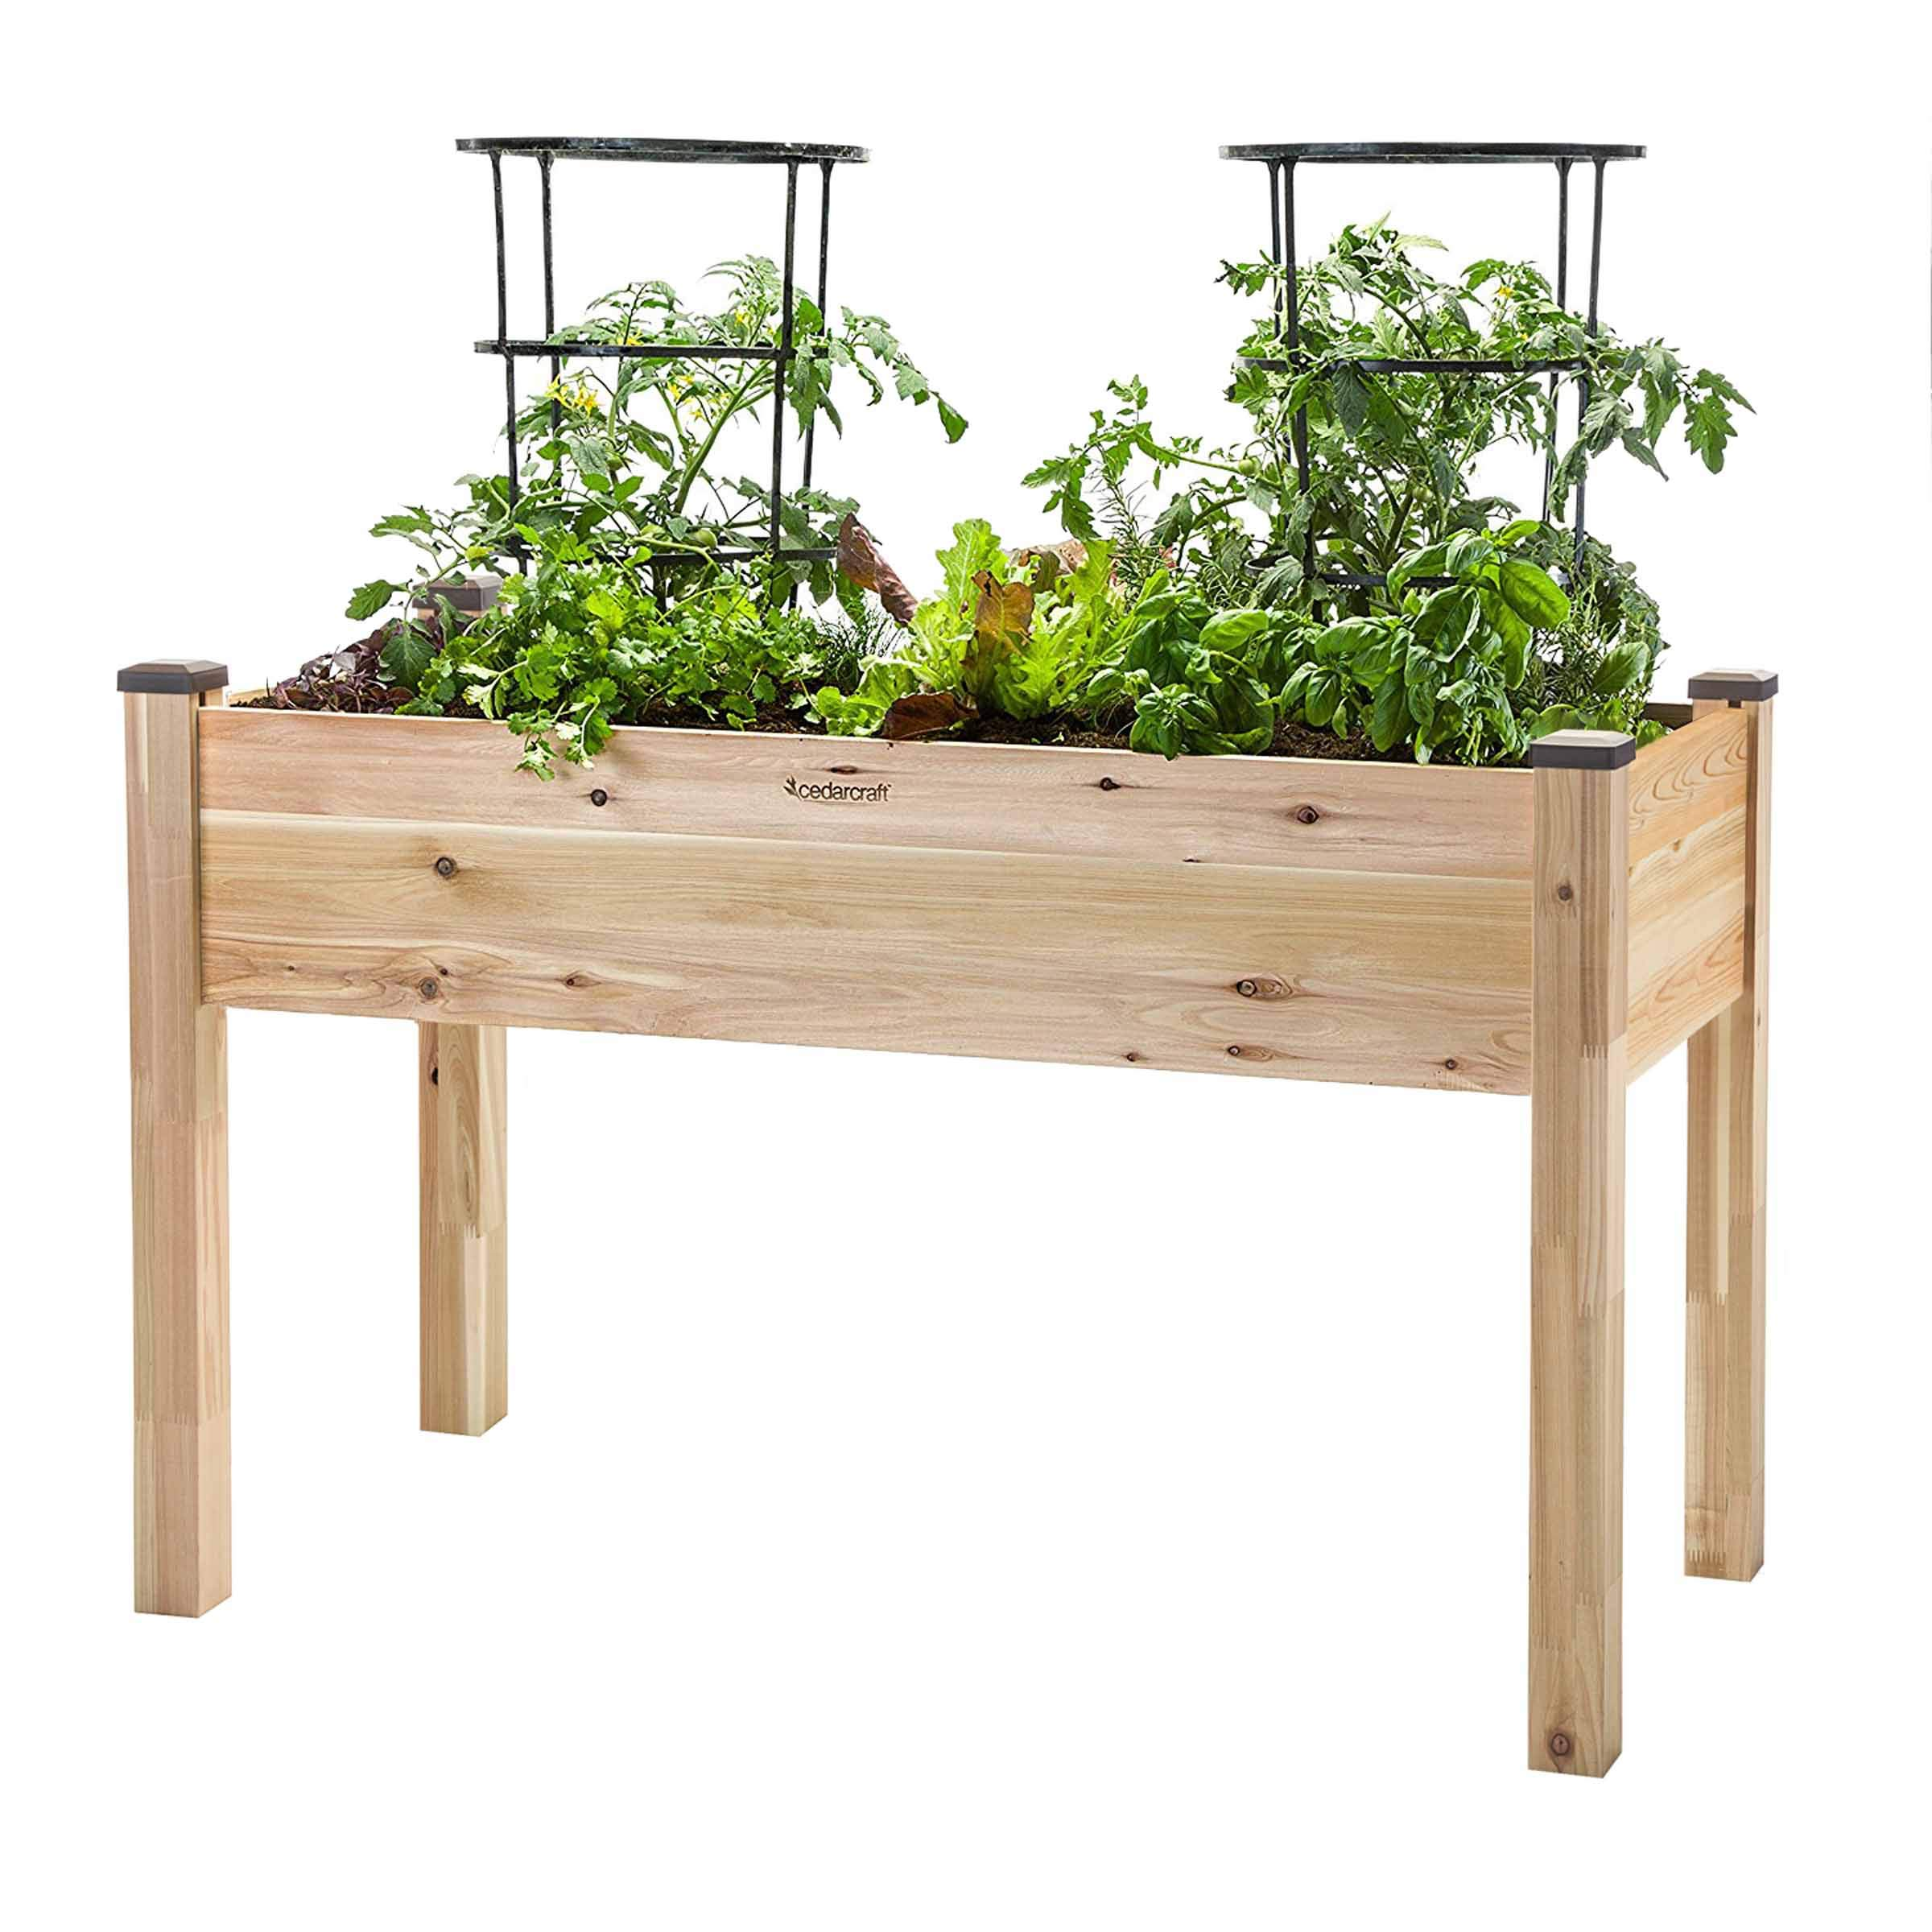 "CedarCraft Elevated Cedar Planter (22"" x 48"" x 30'' H) - Grow Fresh Vegetables, Herb Gardens, Flowers & Succulents. Beautiful Raised Garden Bed for a Deck, Patio or Yard Gardening. No Tools Required."